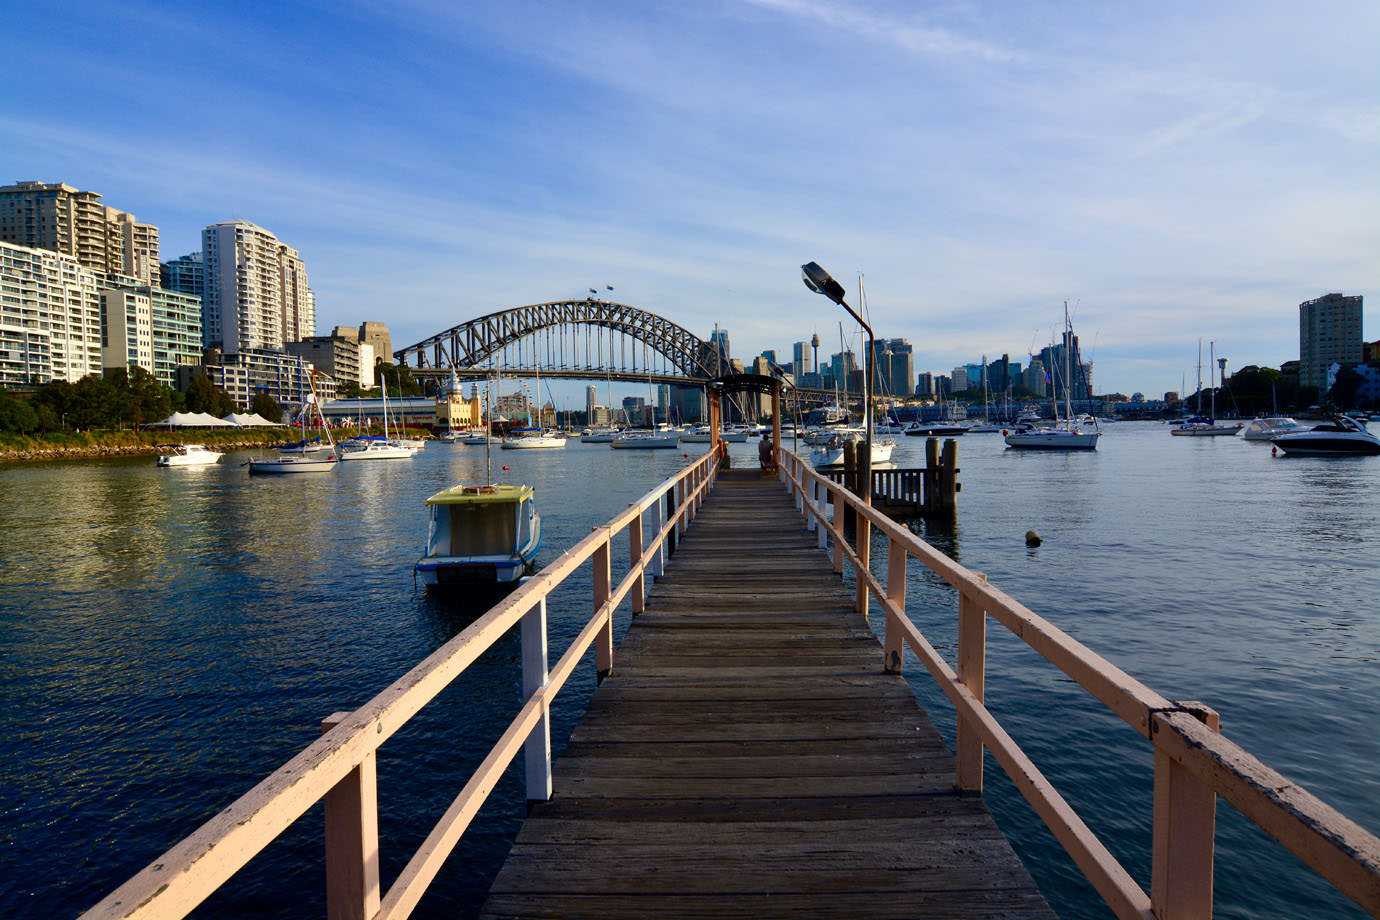 Jetty at Harbour Bridge